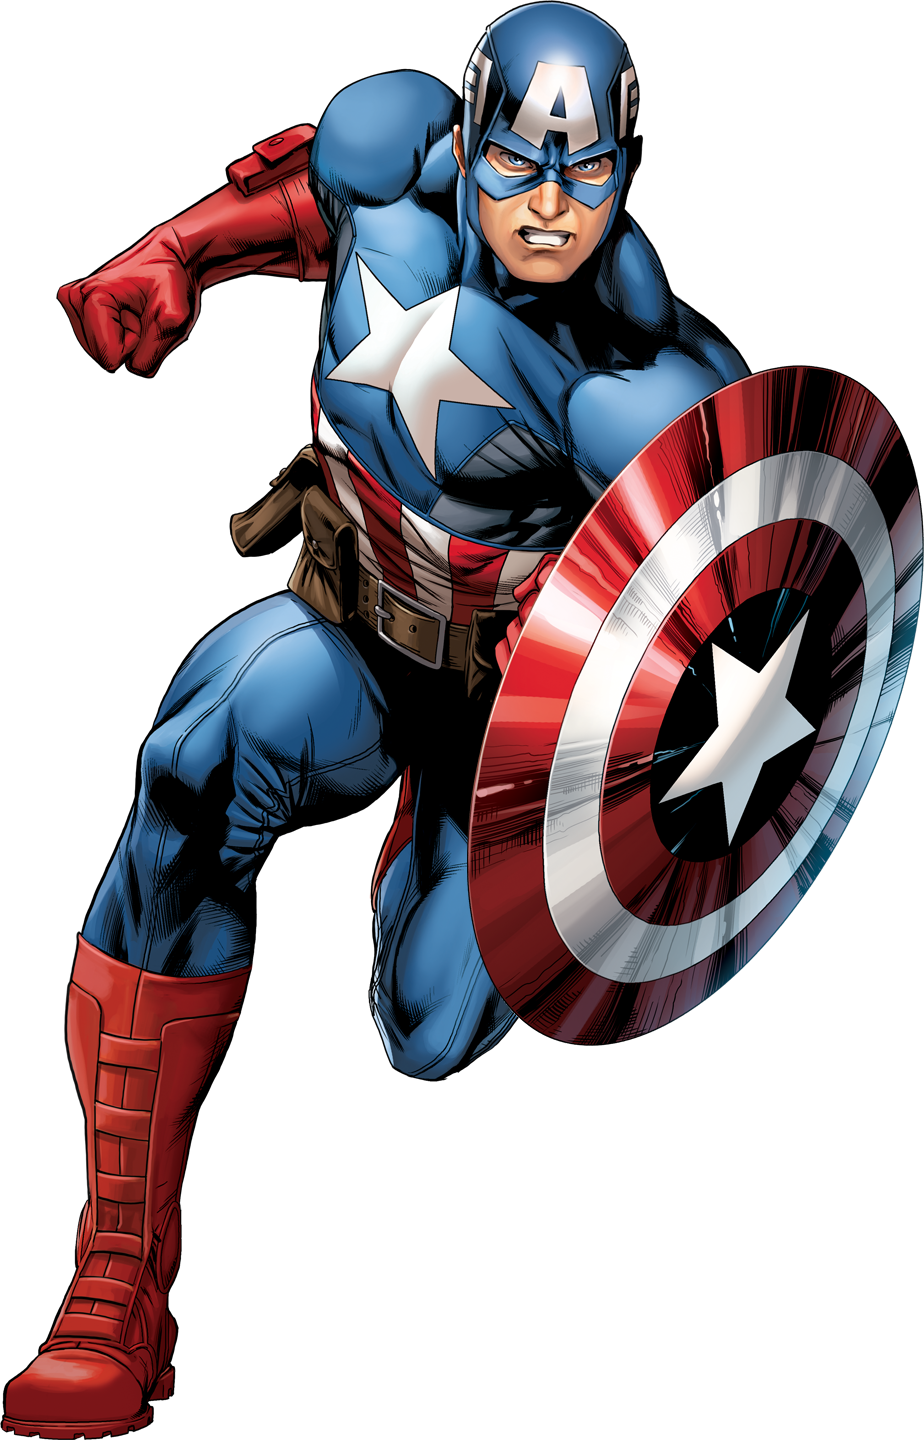 Head clipart captain america. Png images free download